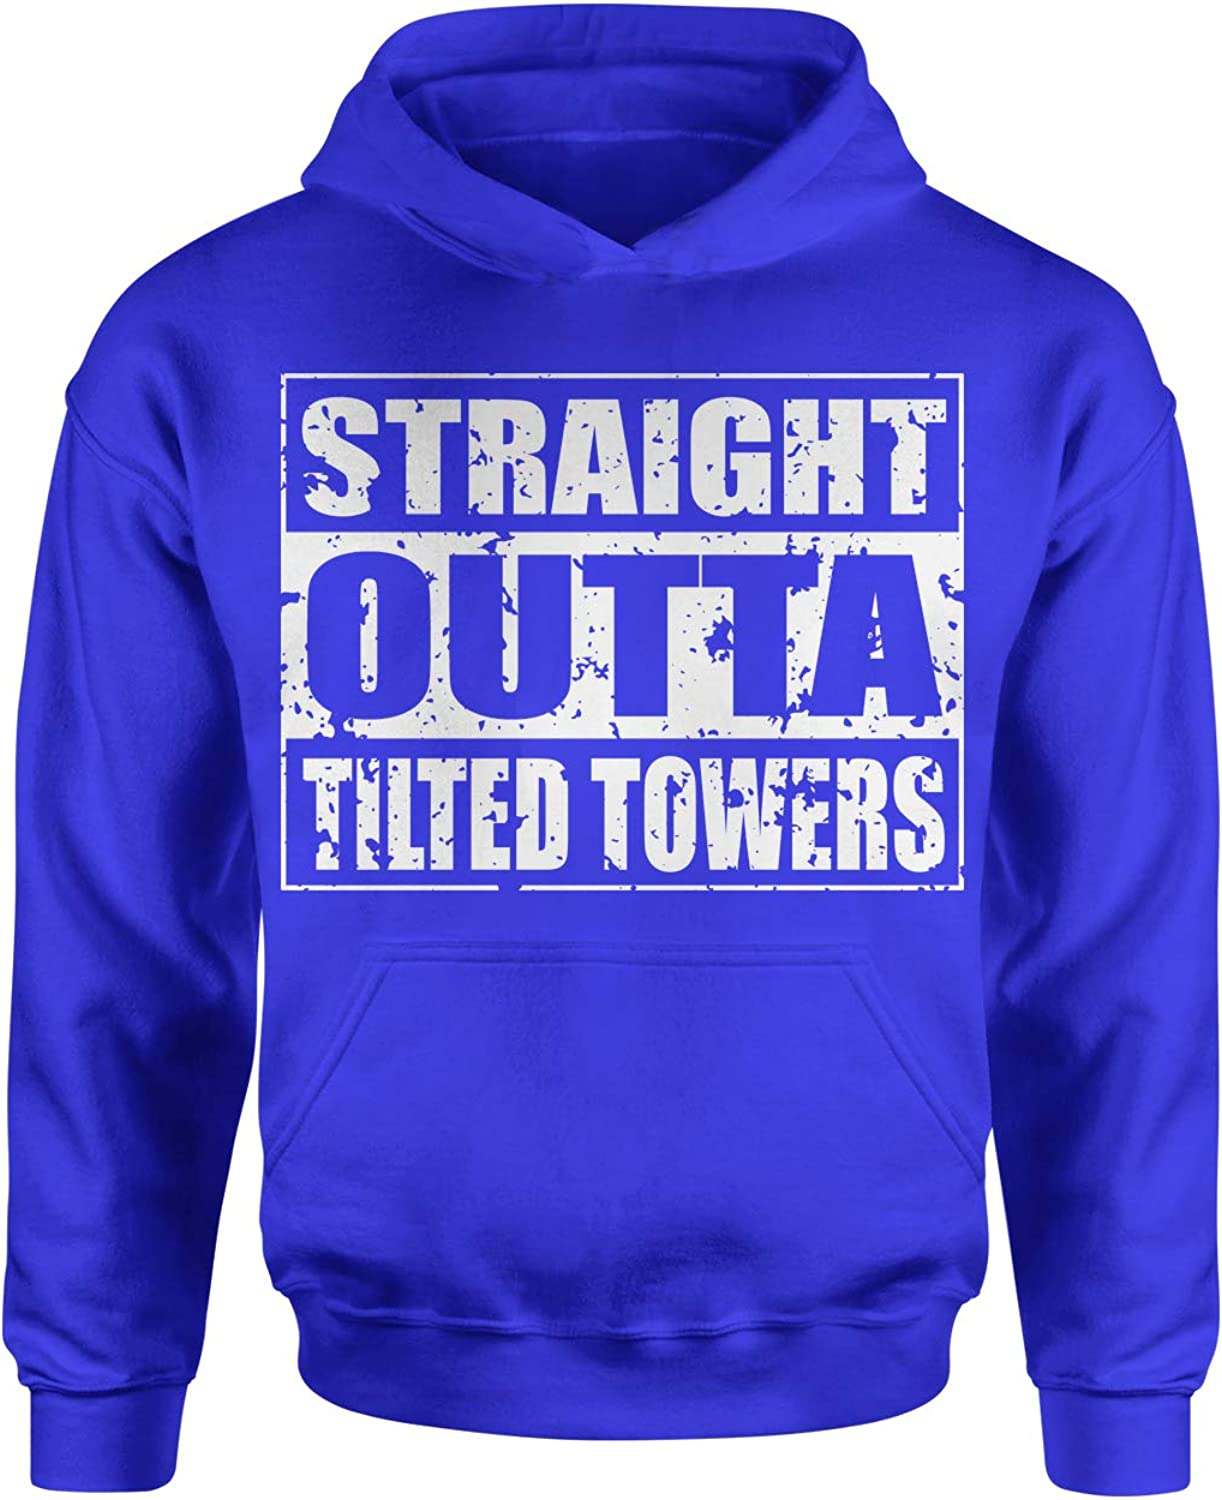 Motivated Culture Straight Outta Tilted Towers Youth-Sized Hoodie